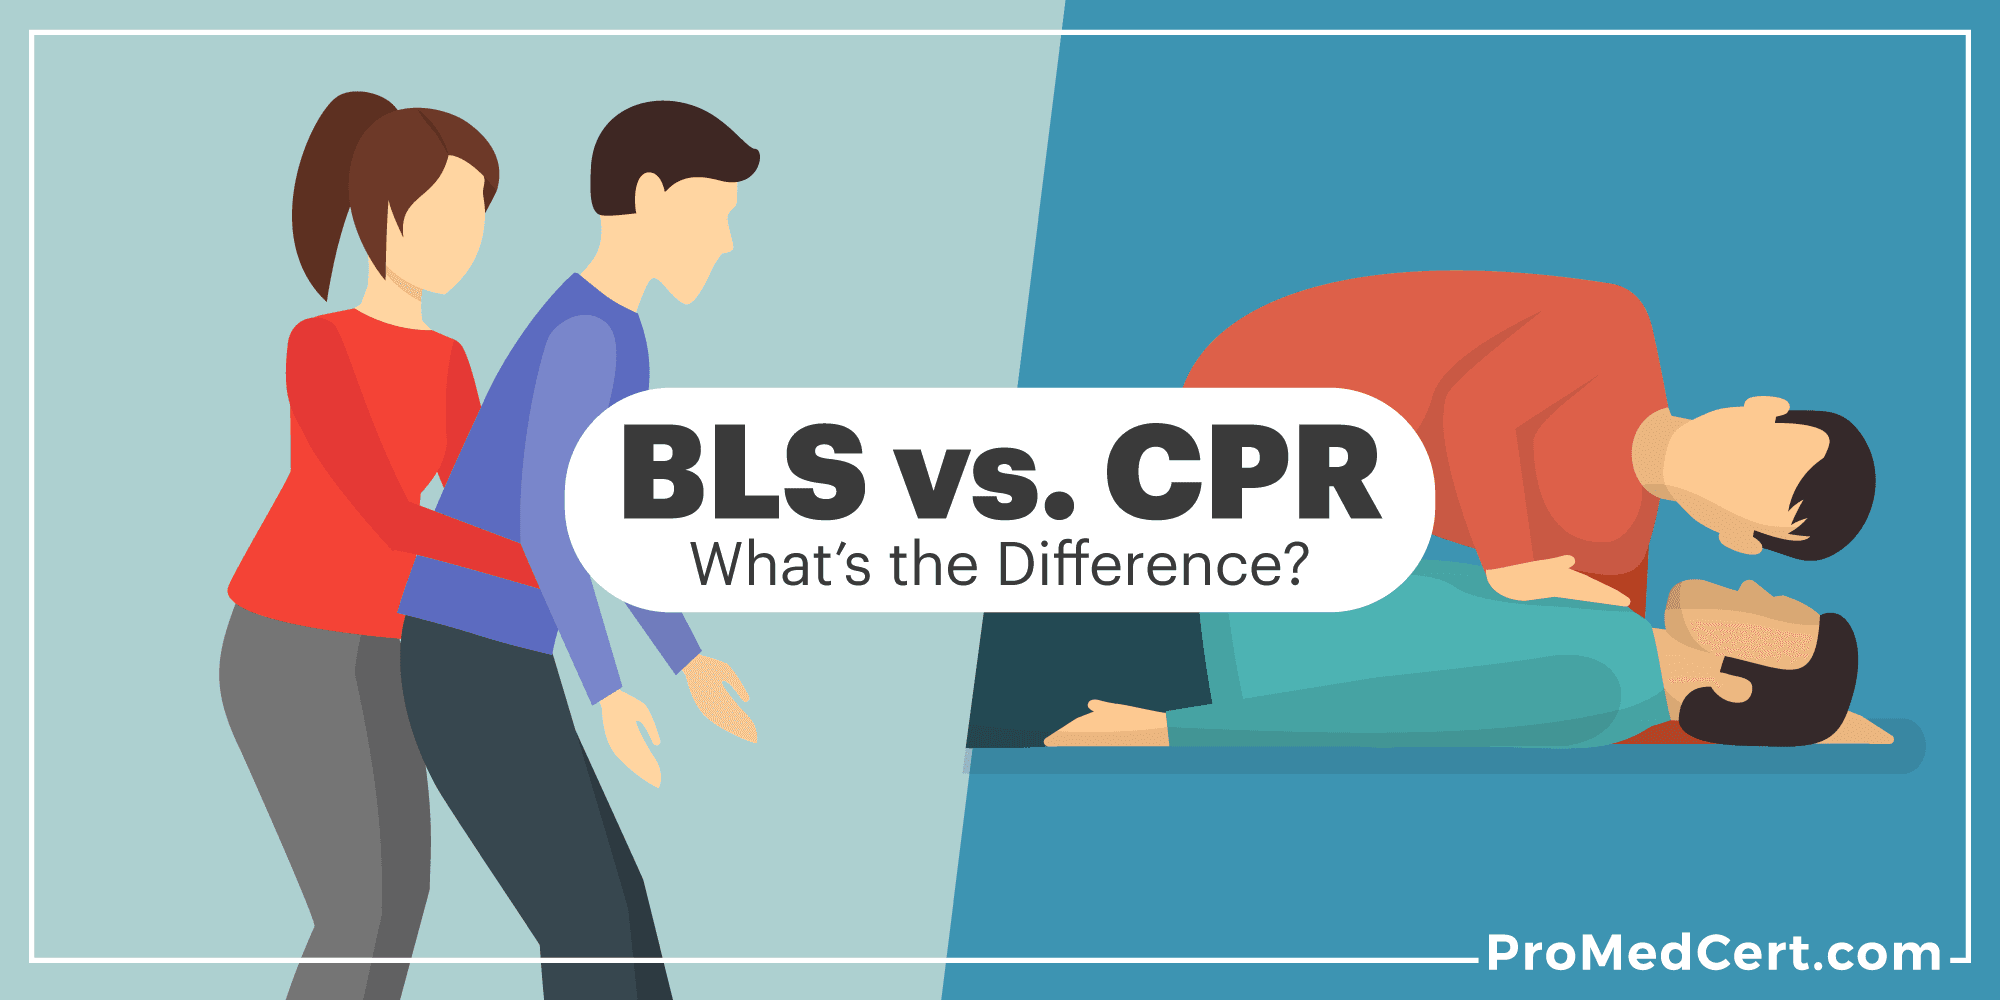 Bls Vs Cpr Whats The Difference